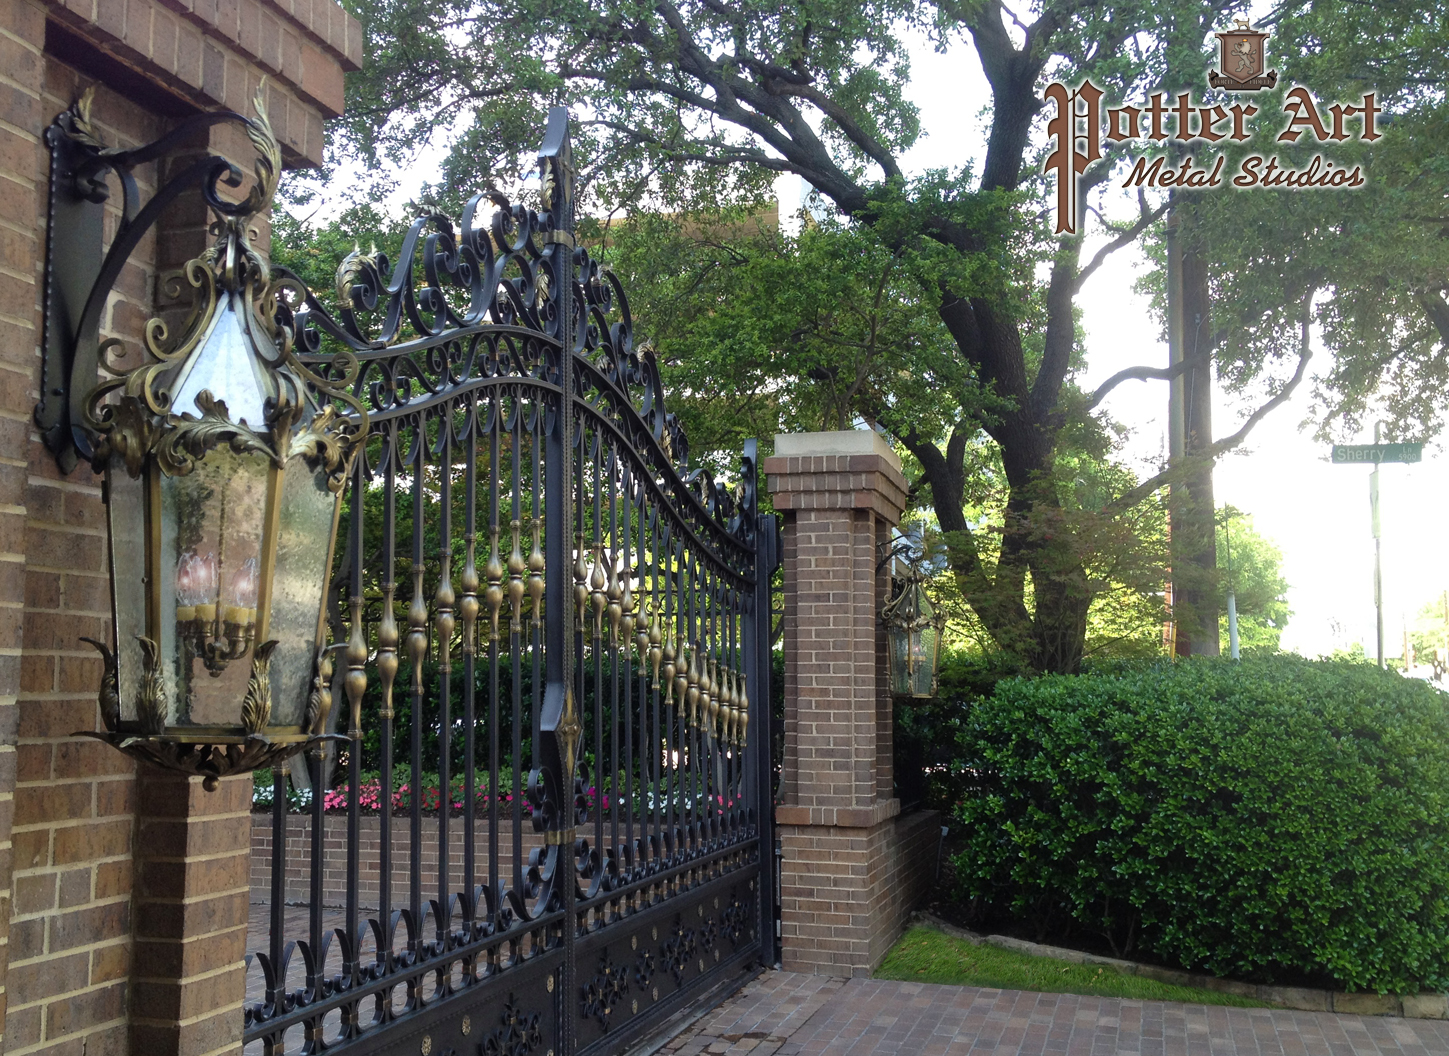 Wrought Iron Gates: Potter Art Metal Studios: Elegant Wrought Iron Gates And